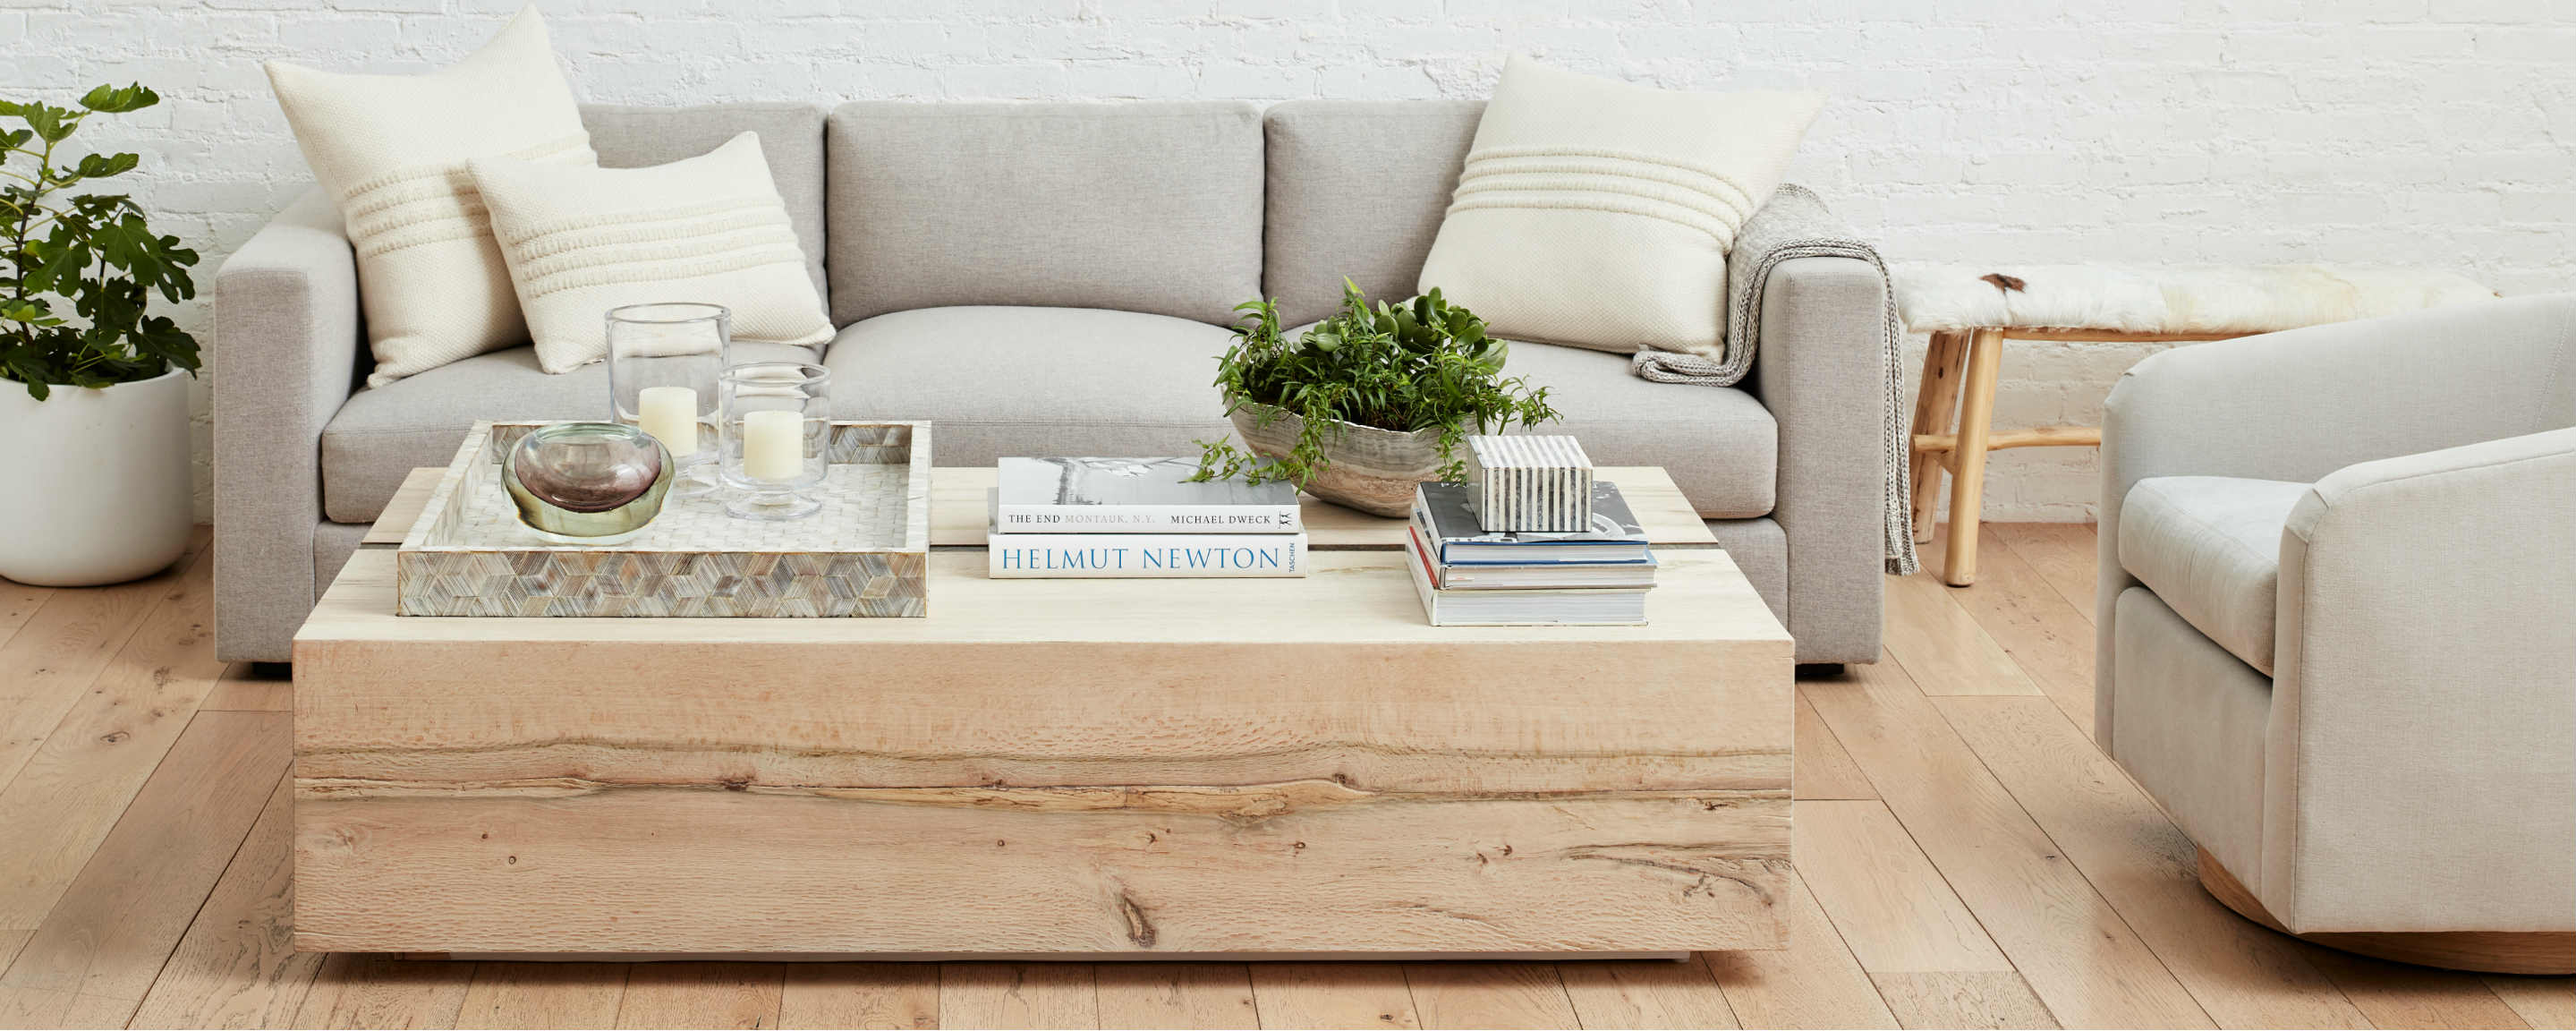 the sonoma coffee table